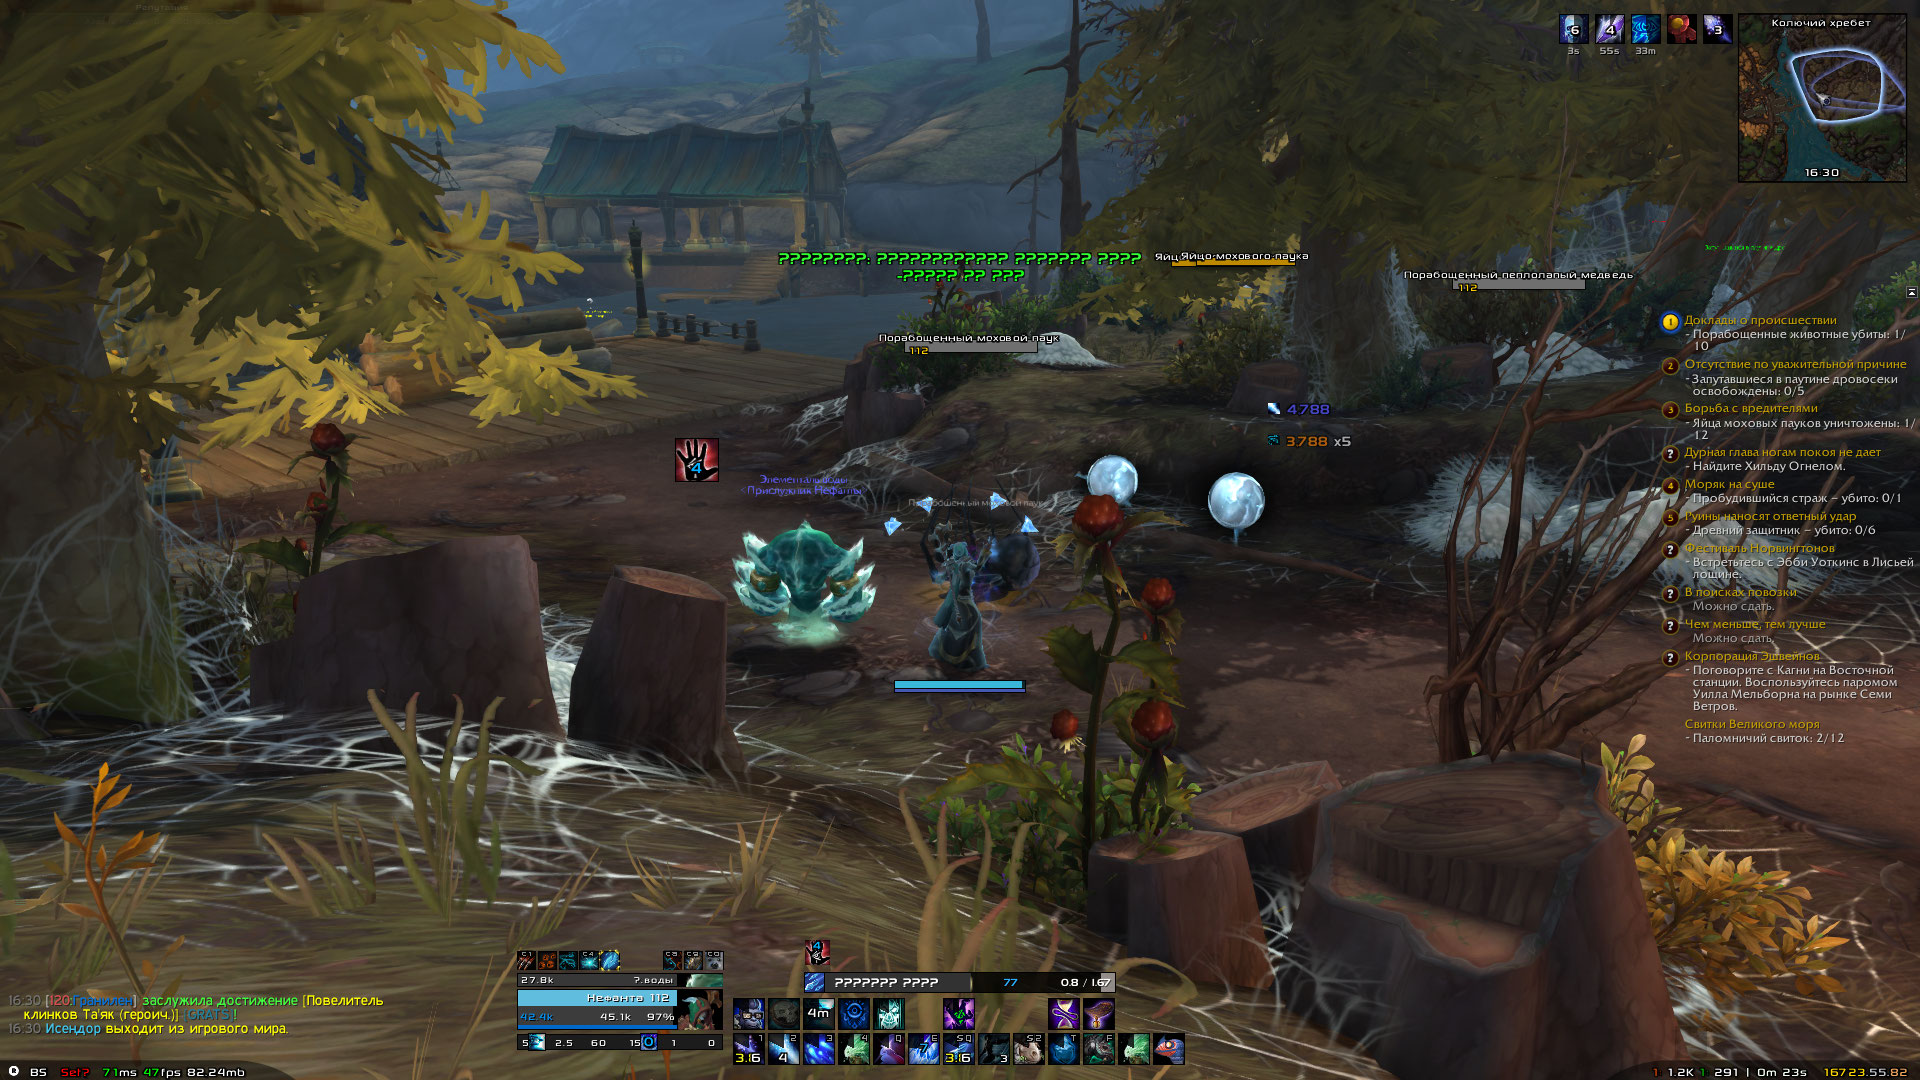 LeilaUI v4 (LUI) : Generic Compilations : World of Warcraft AddOns